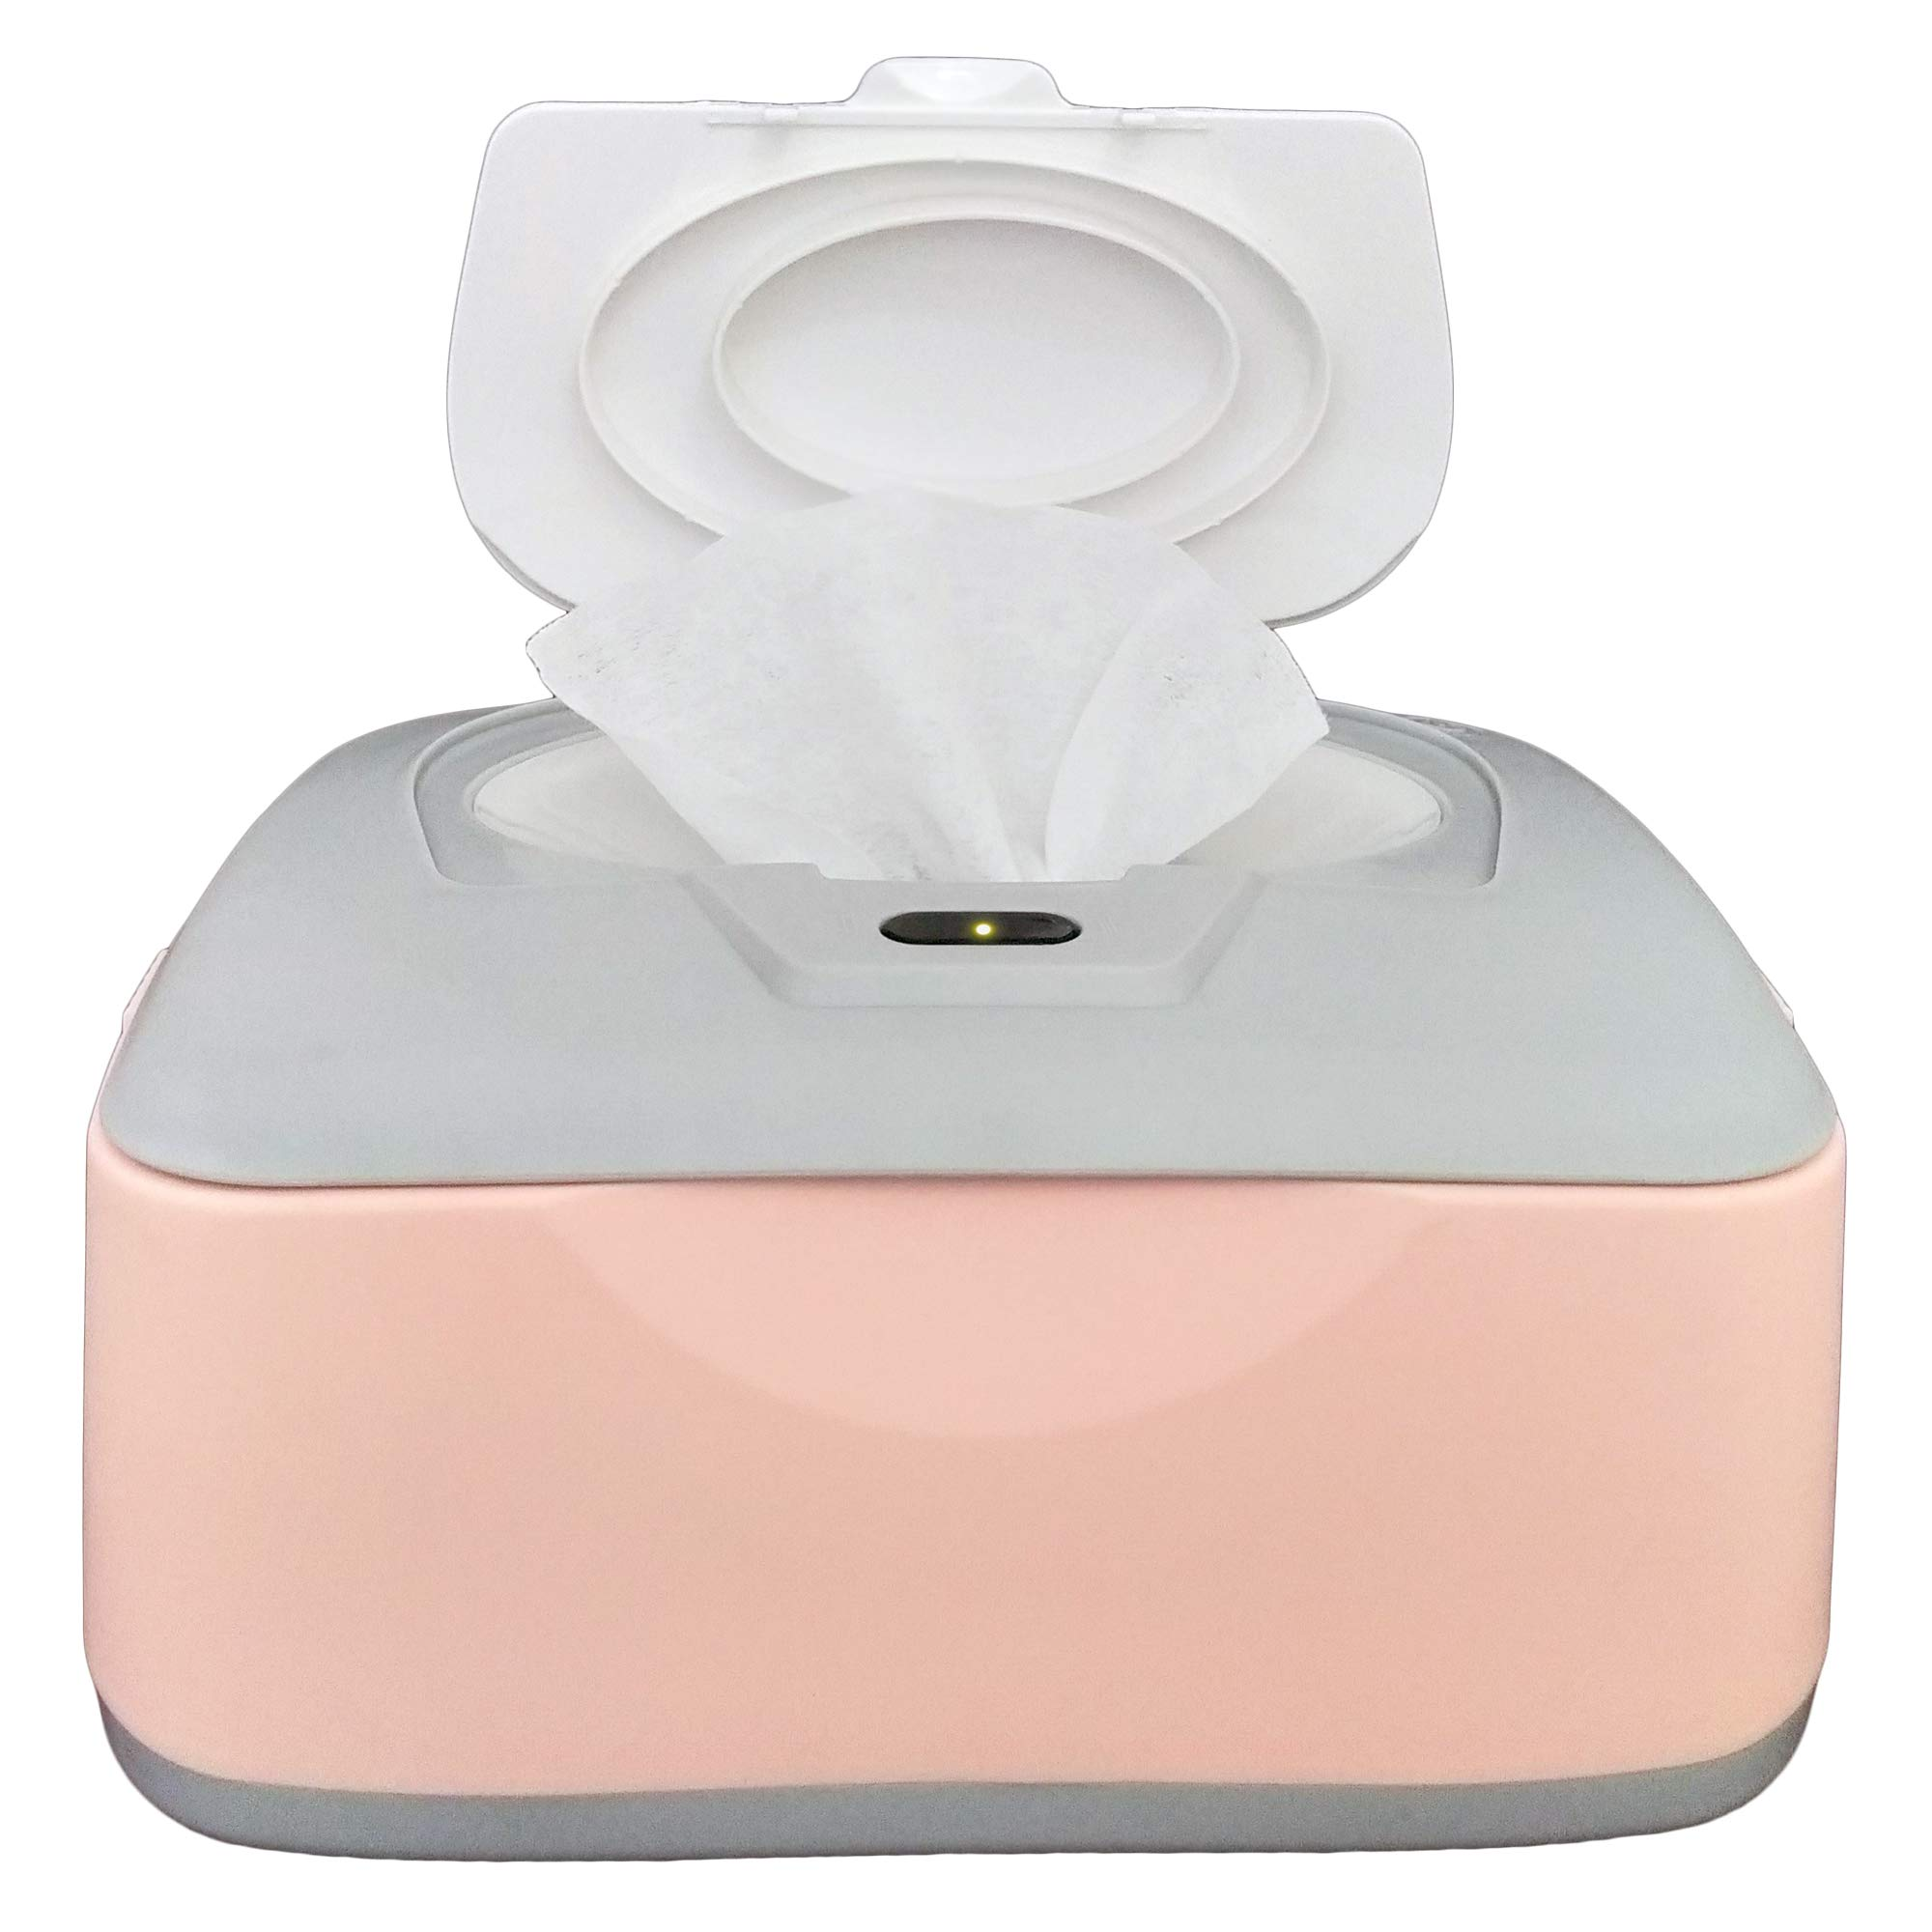 Baby Wet Wipes Warmer, Dispenser, Holder and Case - with Easy Press On/Off Switch, Only Available at Amazon by GoGo Pure.